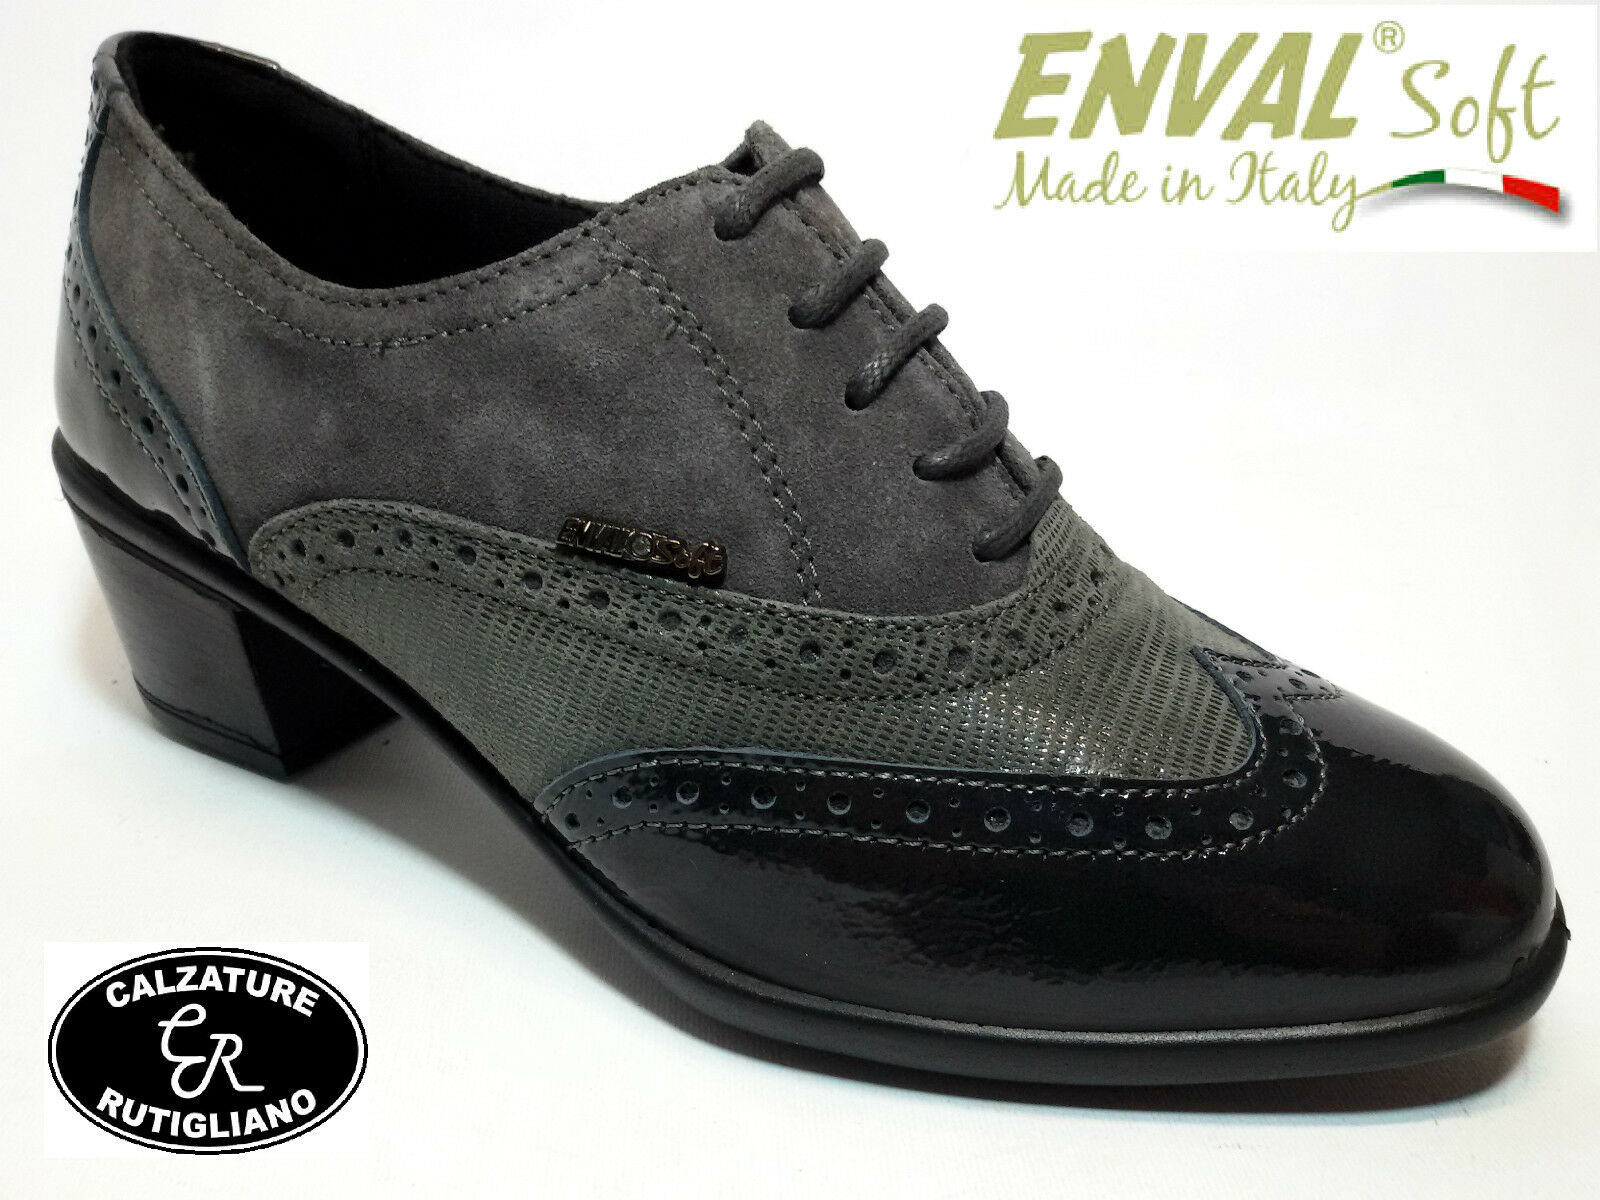 ENVAL SOFT 69163 chaussures femmes FRANCESINA gris LINEA COMODA MADE IN ITALY